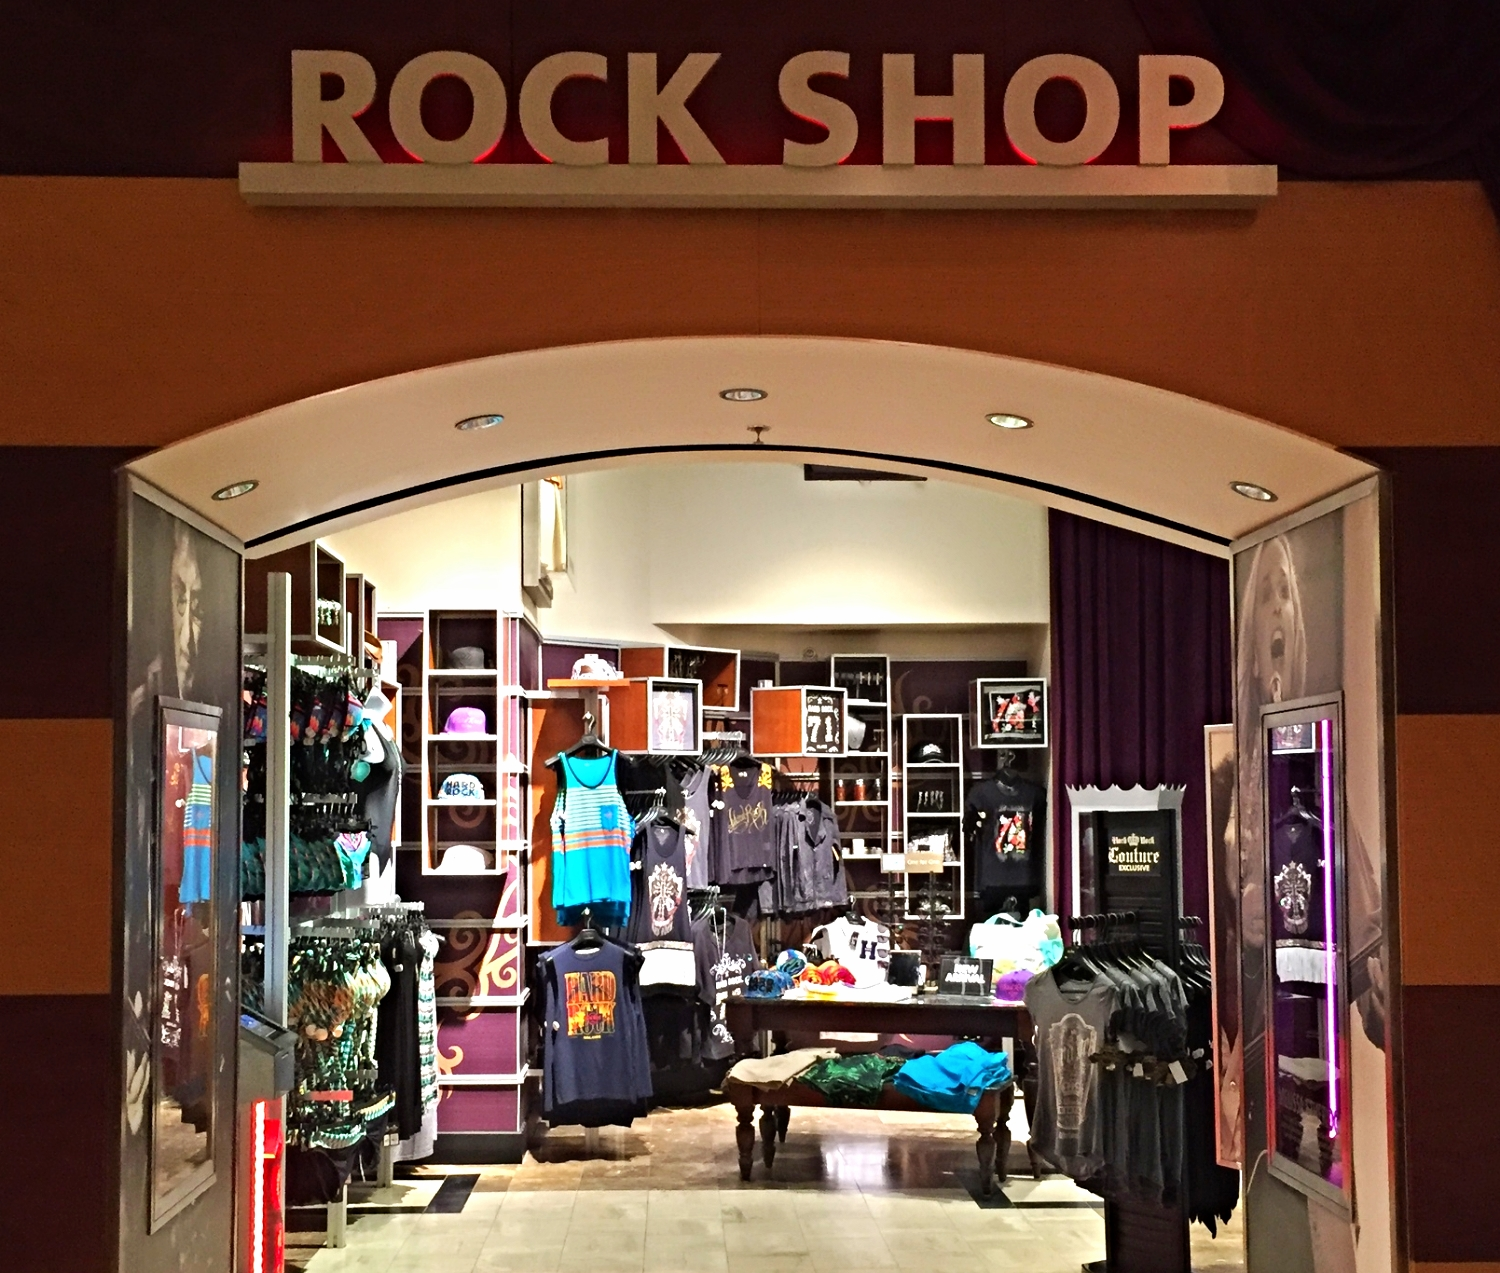 The Rock Shop in the Hard Rock Hotel.